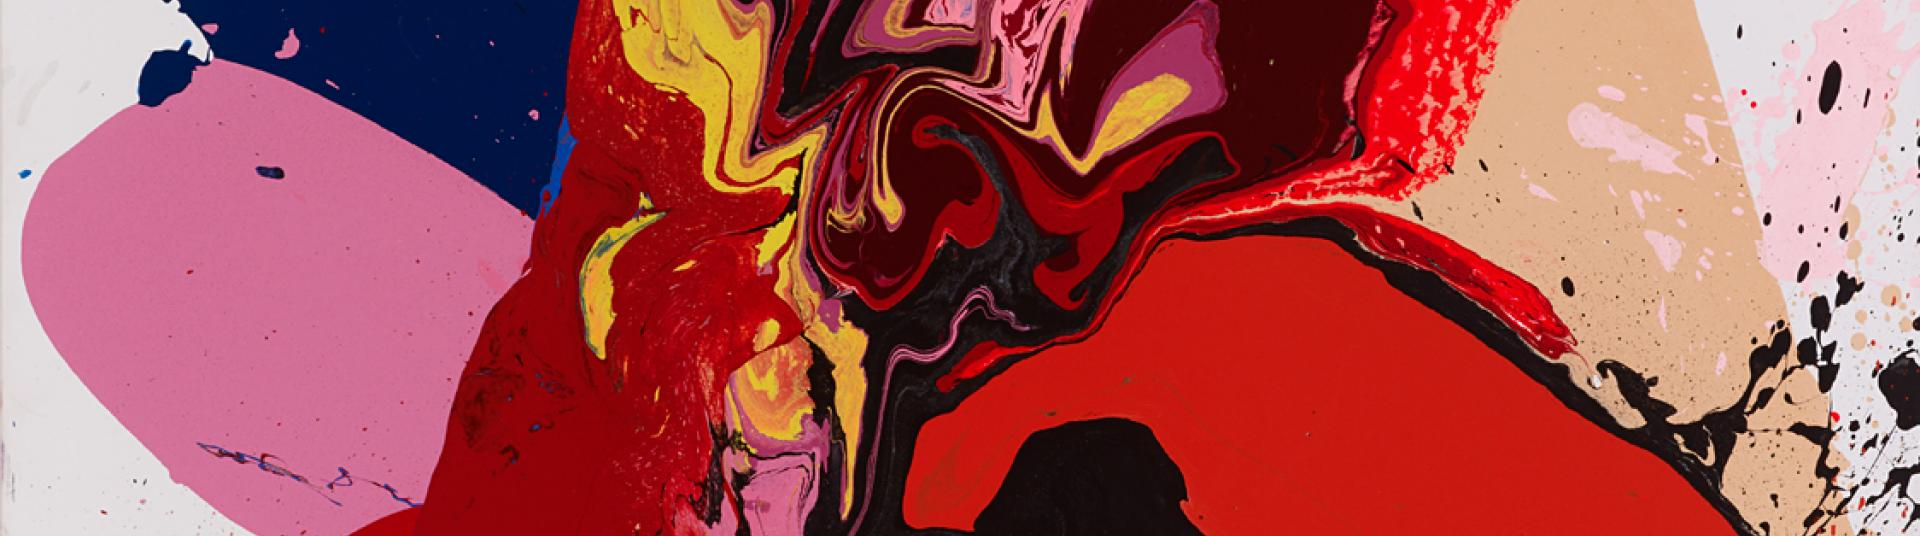 Sam Smith's abstract painting Squeeze and Rock.